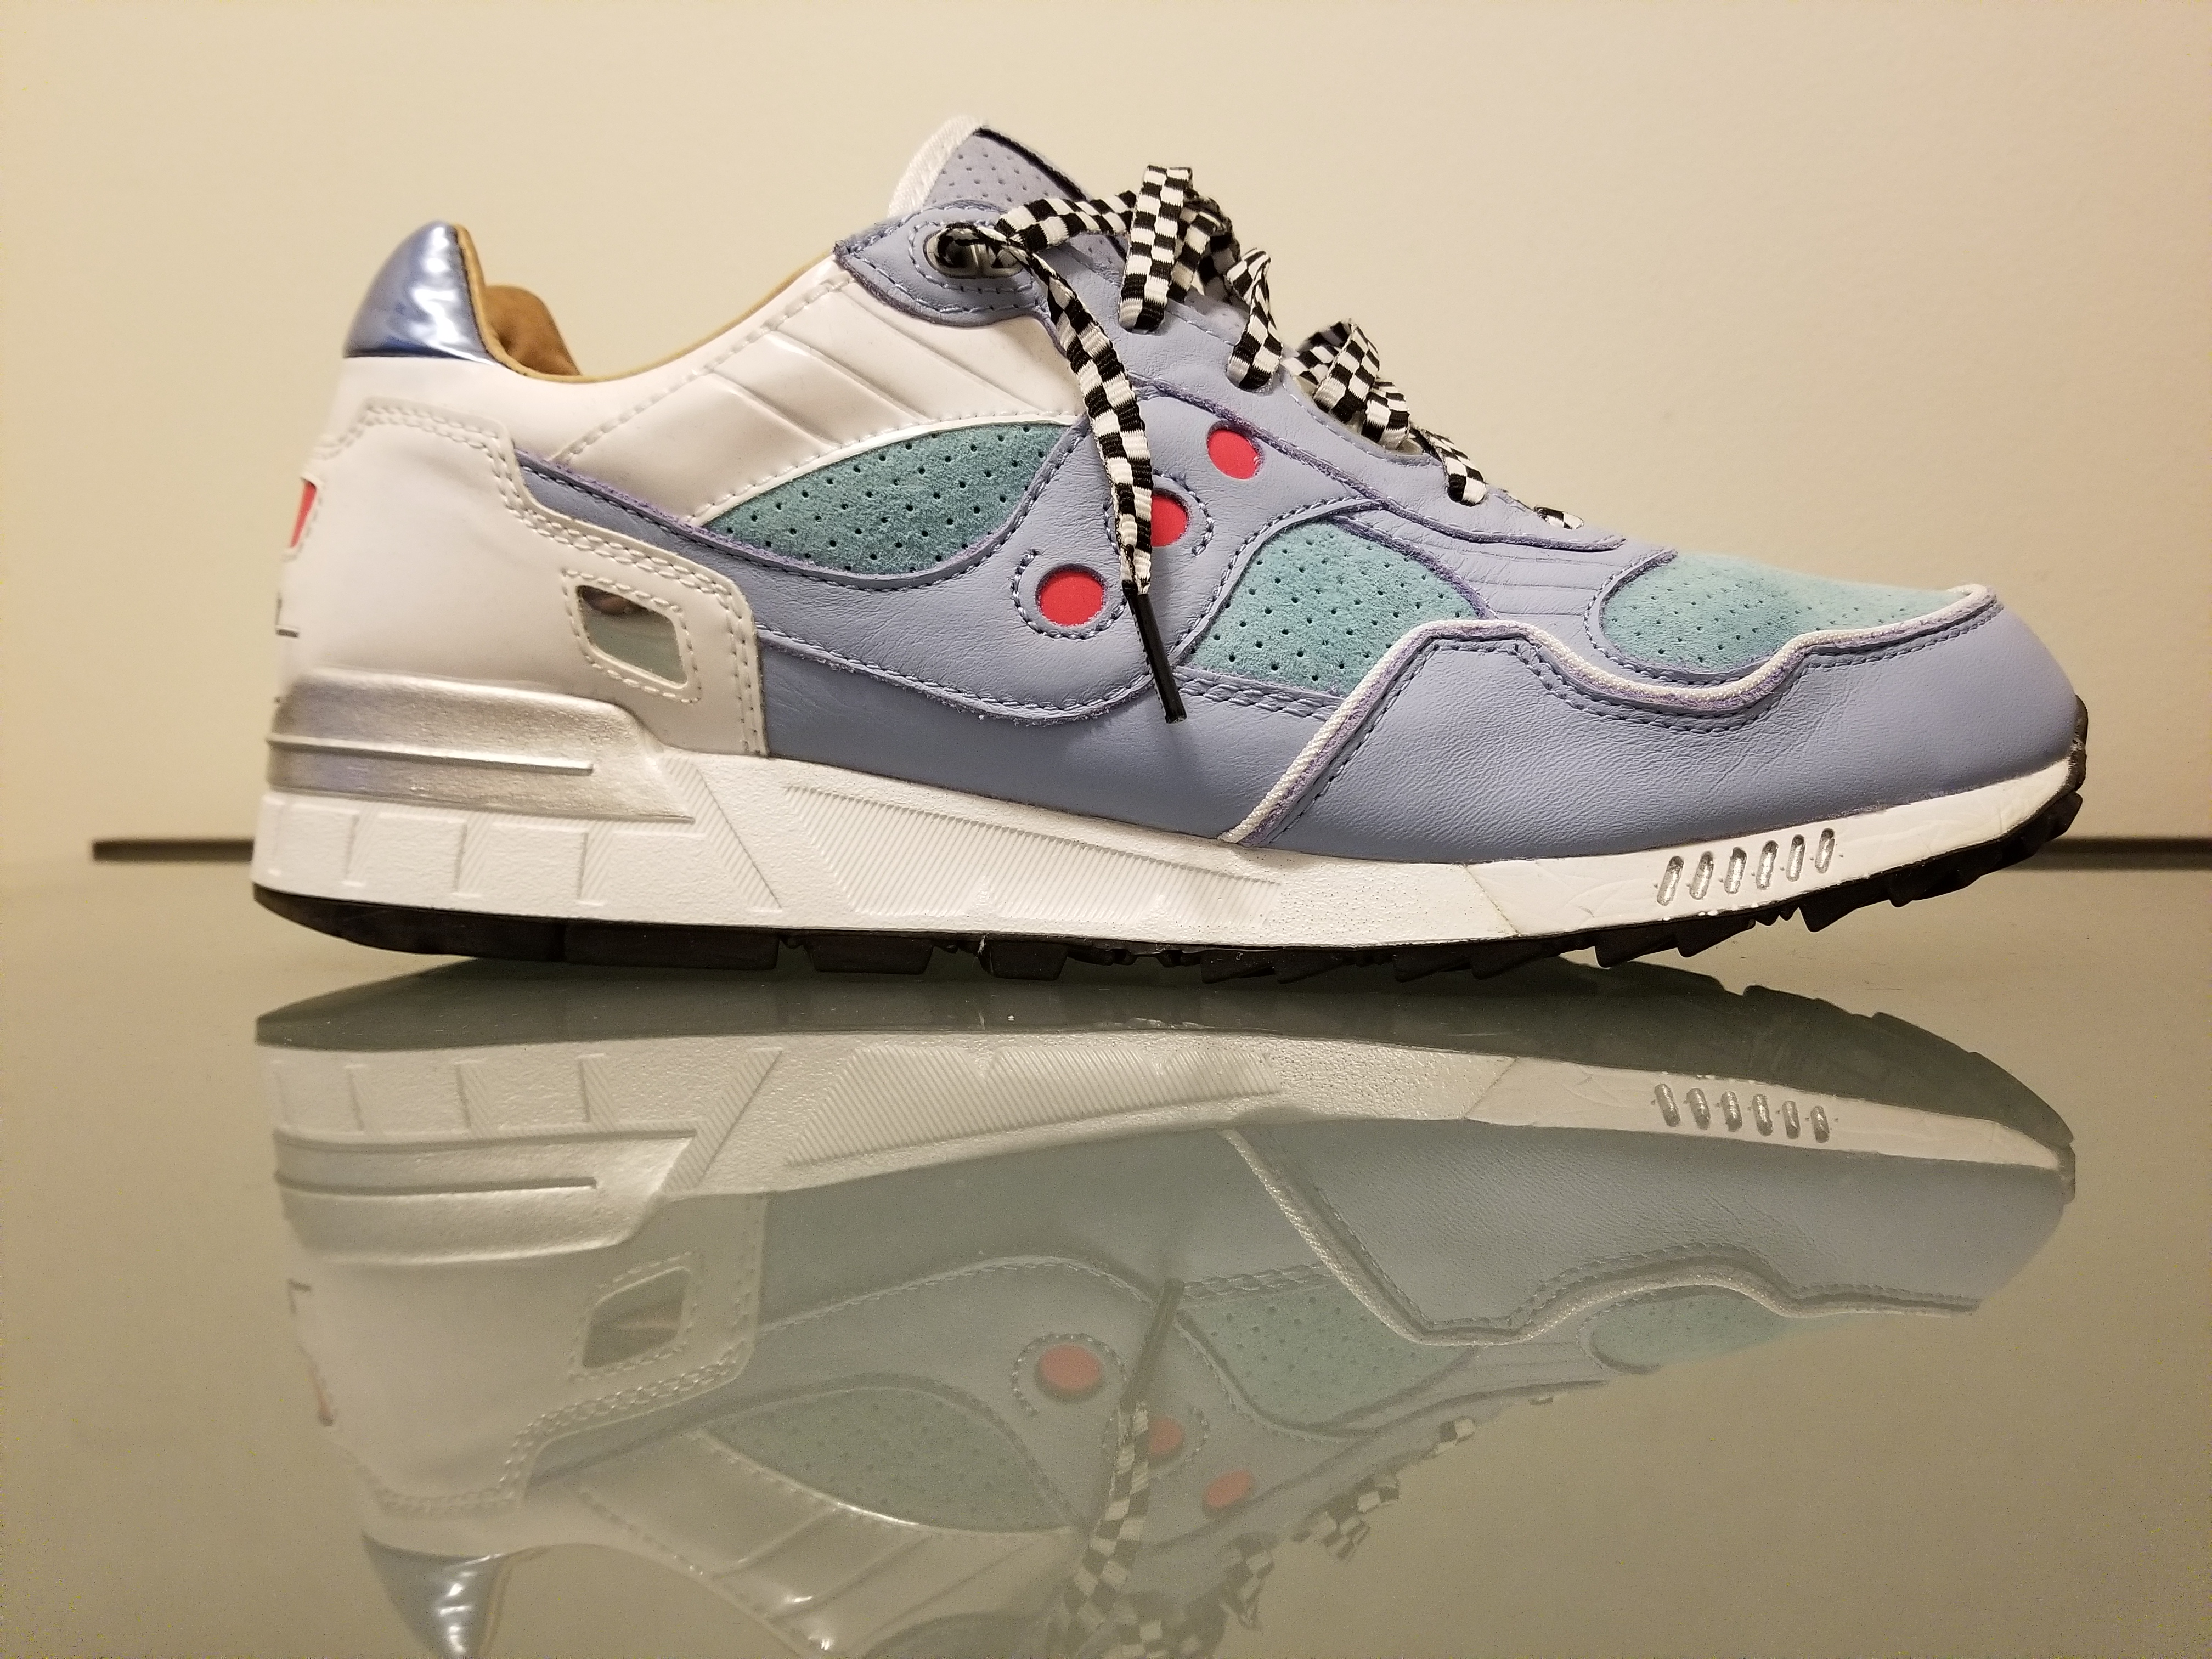 fefdff44a Saucony Extra Butter x Saucony Shadow 5000 For the People Size 13 ...